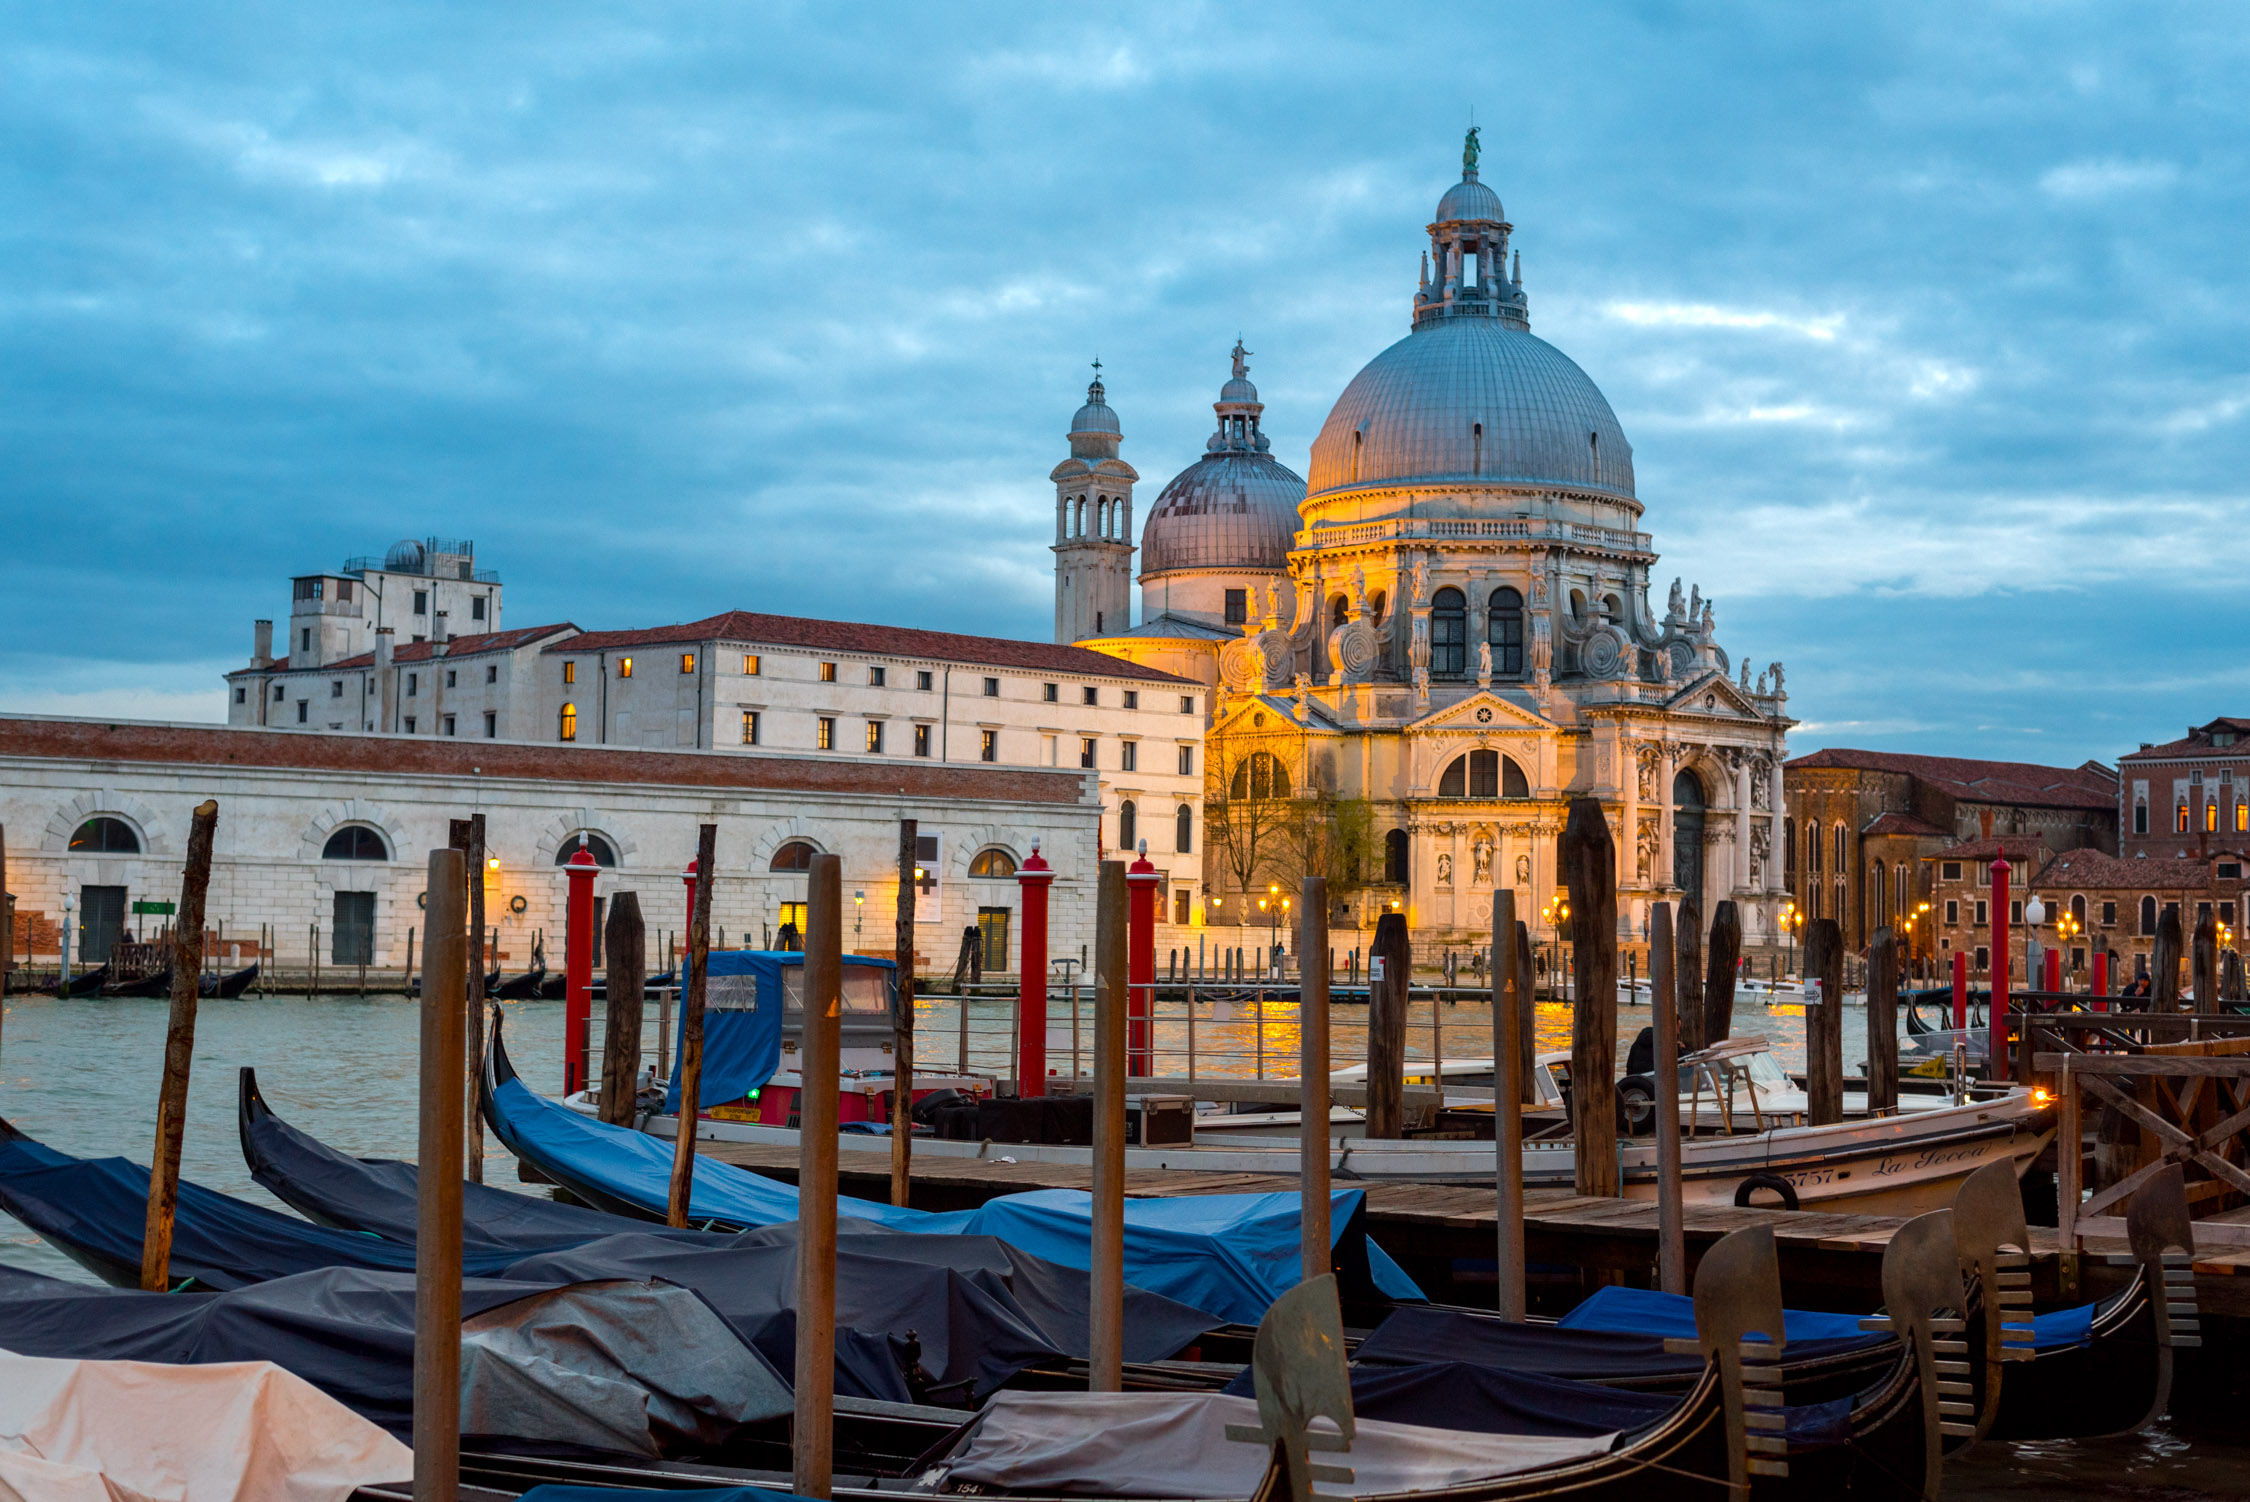 The view from Hotel Monaco, in Venice